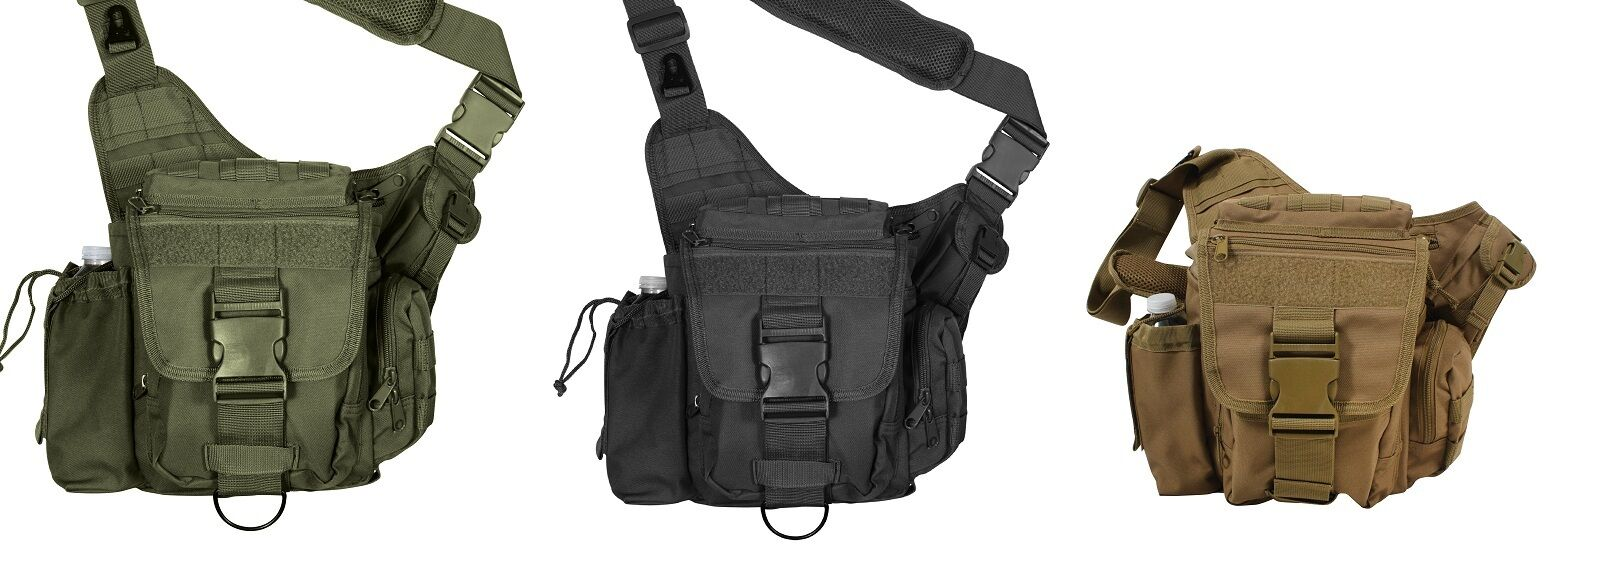 Advanced Tactical Shoulder Hip Bag - MOLLE Compatible with Cell Phone Pouch